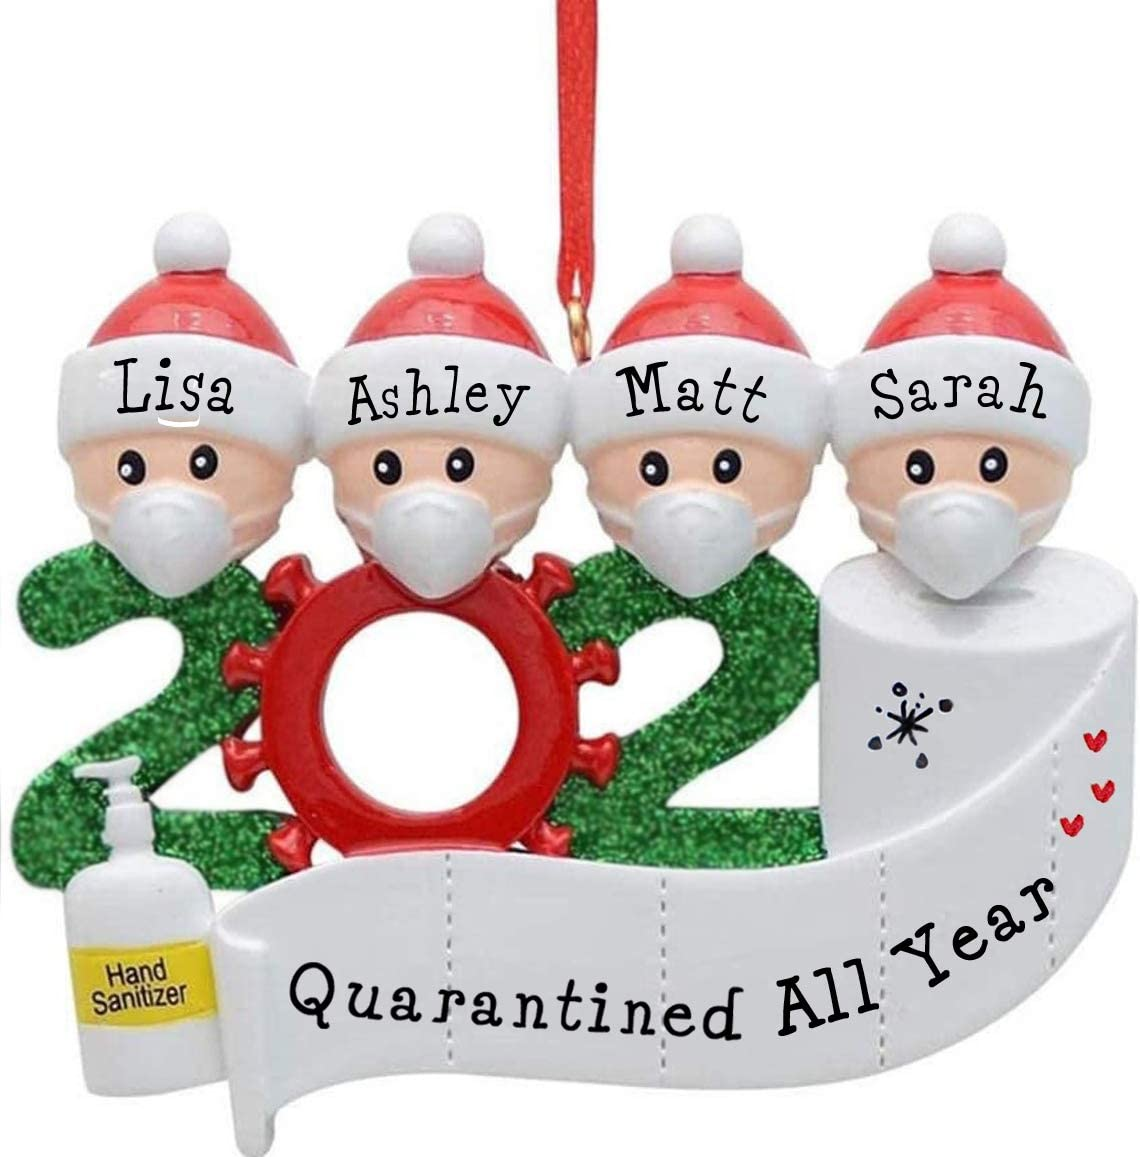 2020 Quarantine Personalized Ornaments Survivor Family Of 4 Christmas Ornament 4 Family Kitchen Dining